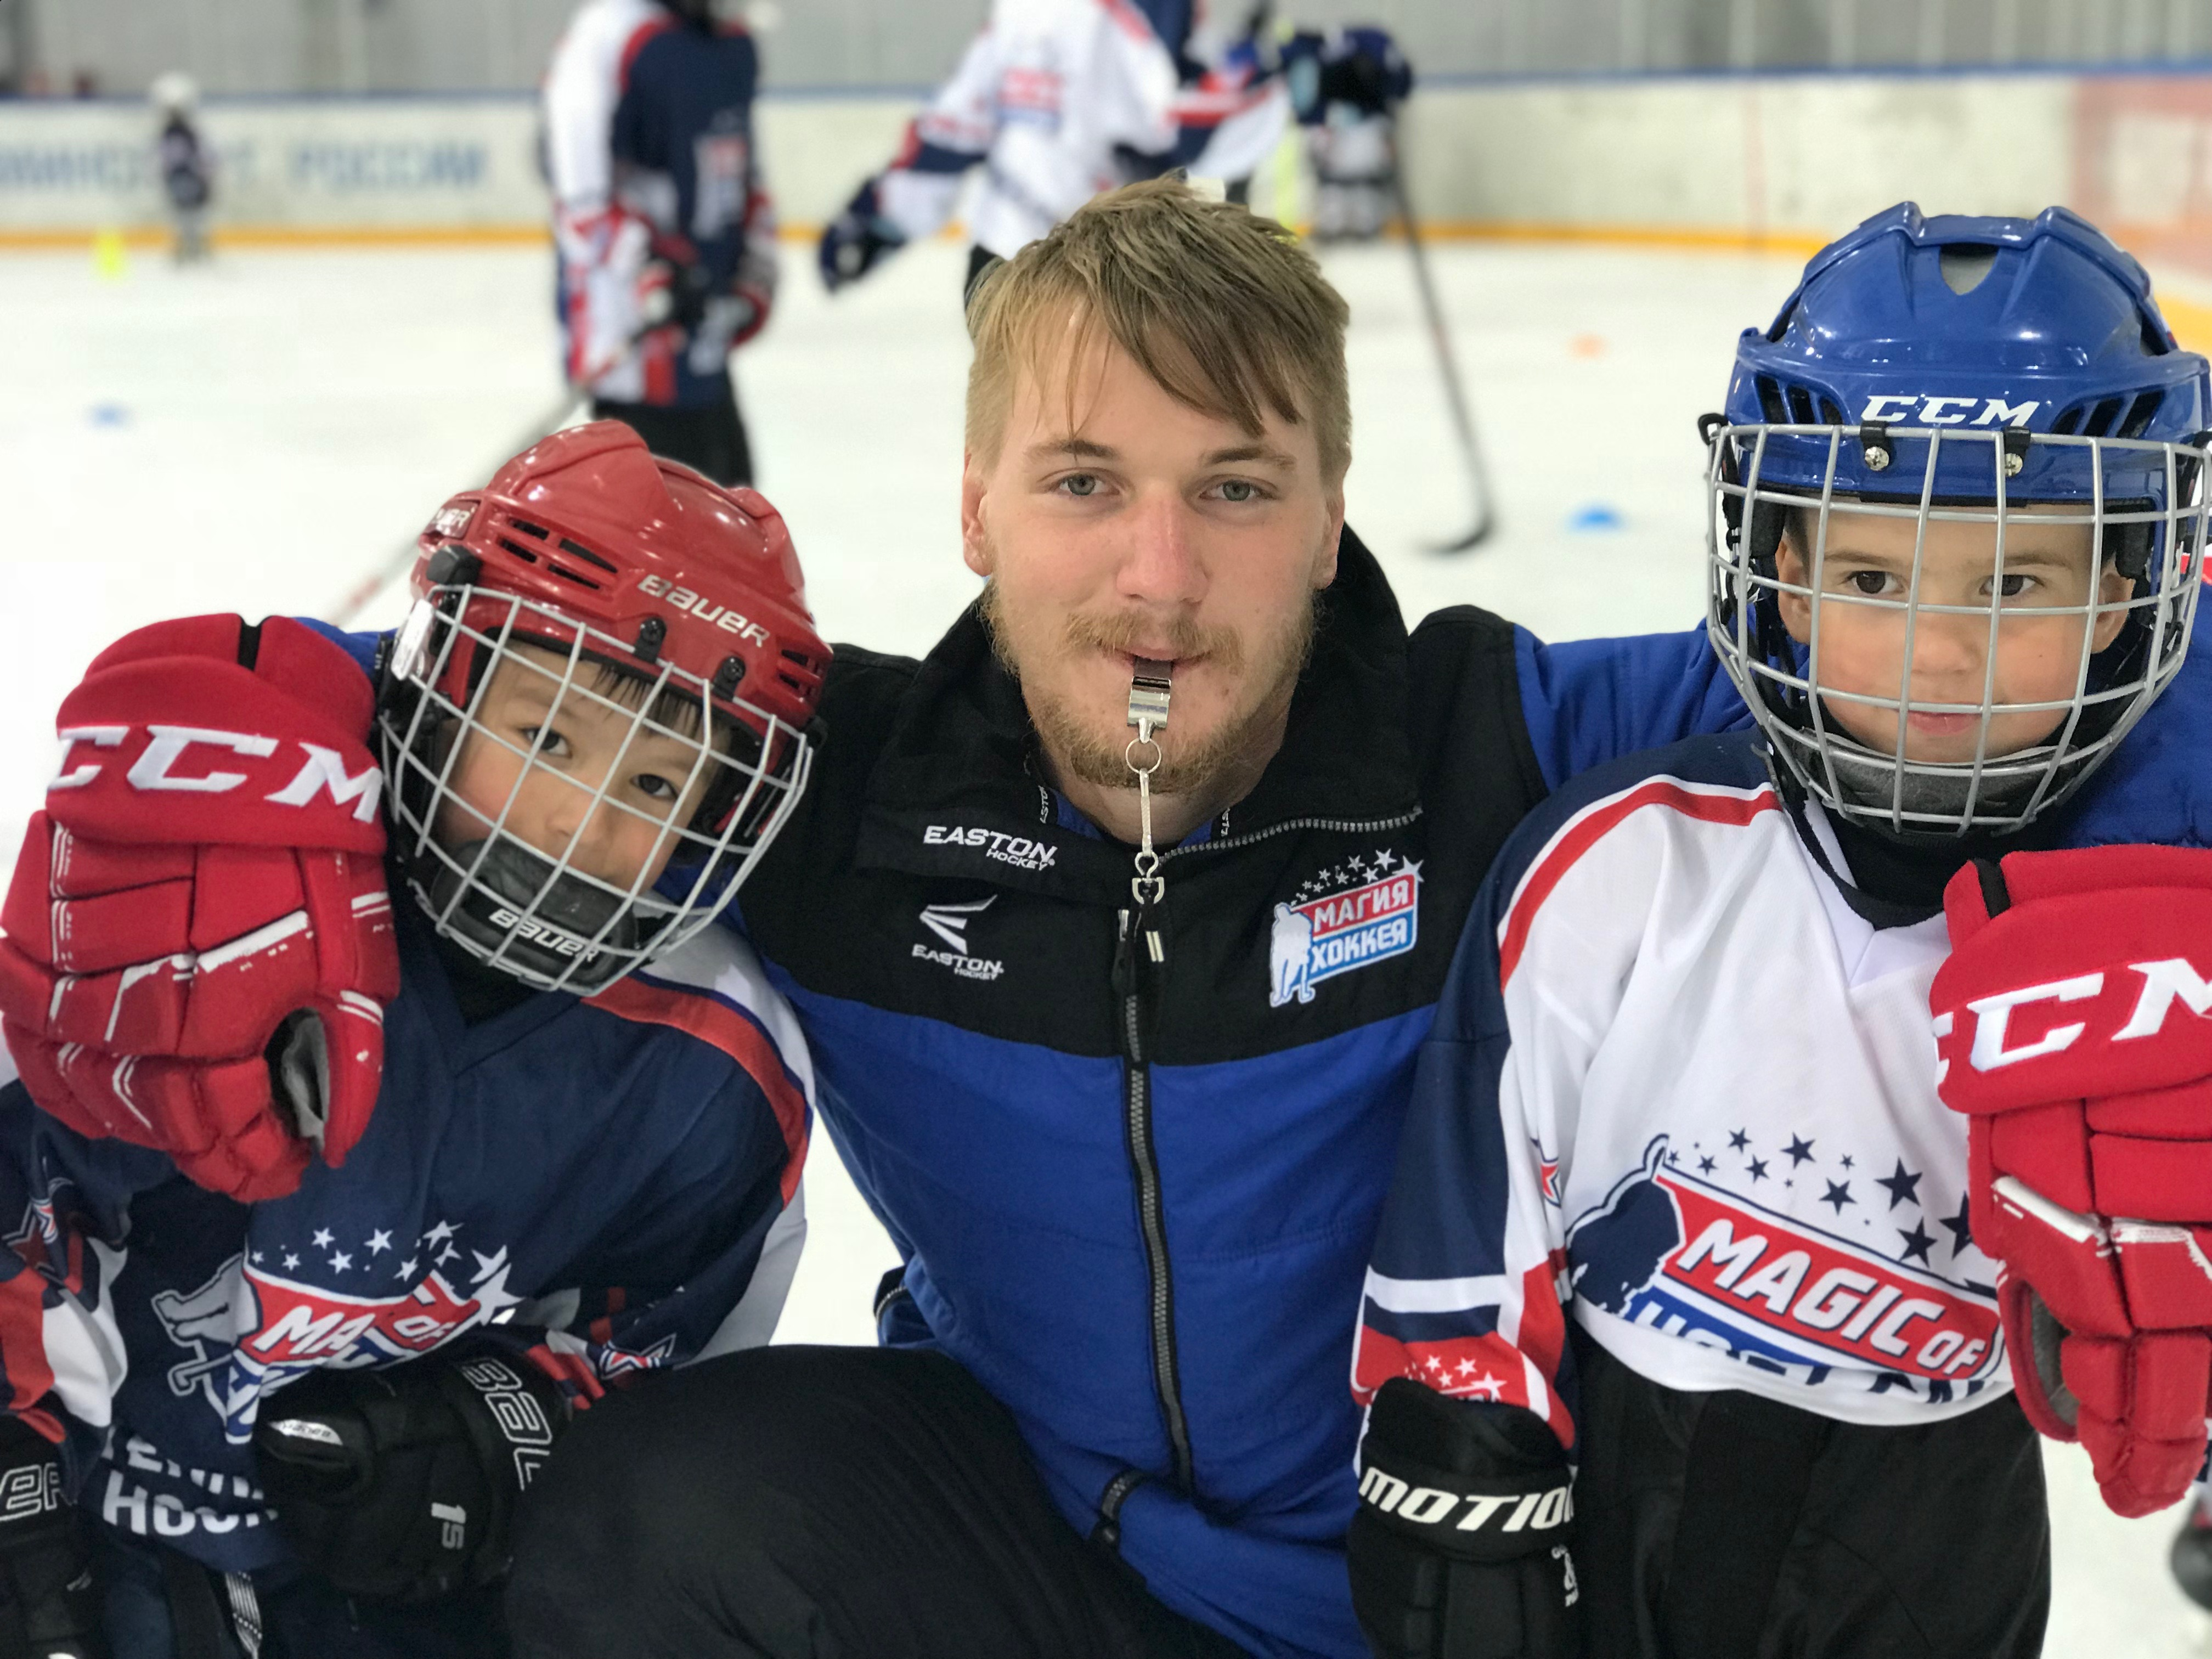 «International Ice Hockey Camp» – Хоккейный лагерь в Адлере, фото 12